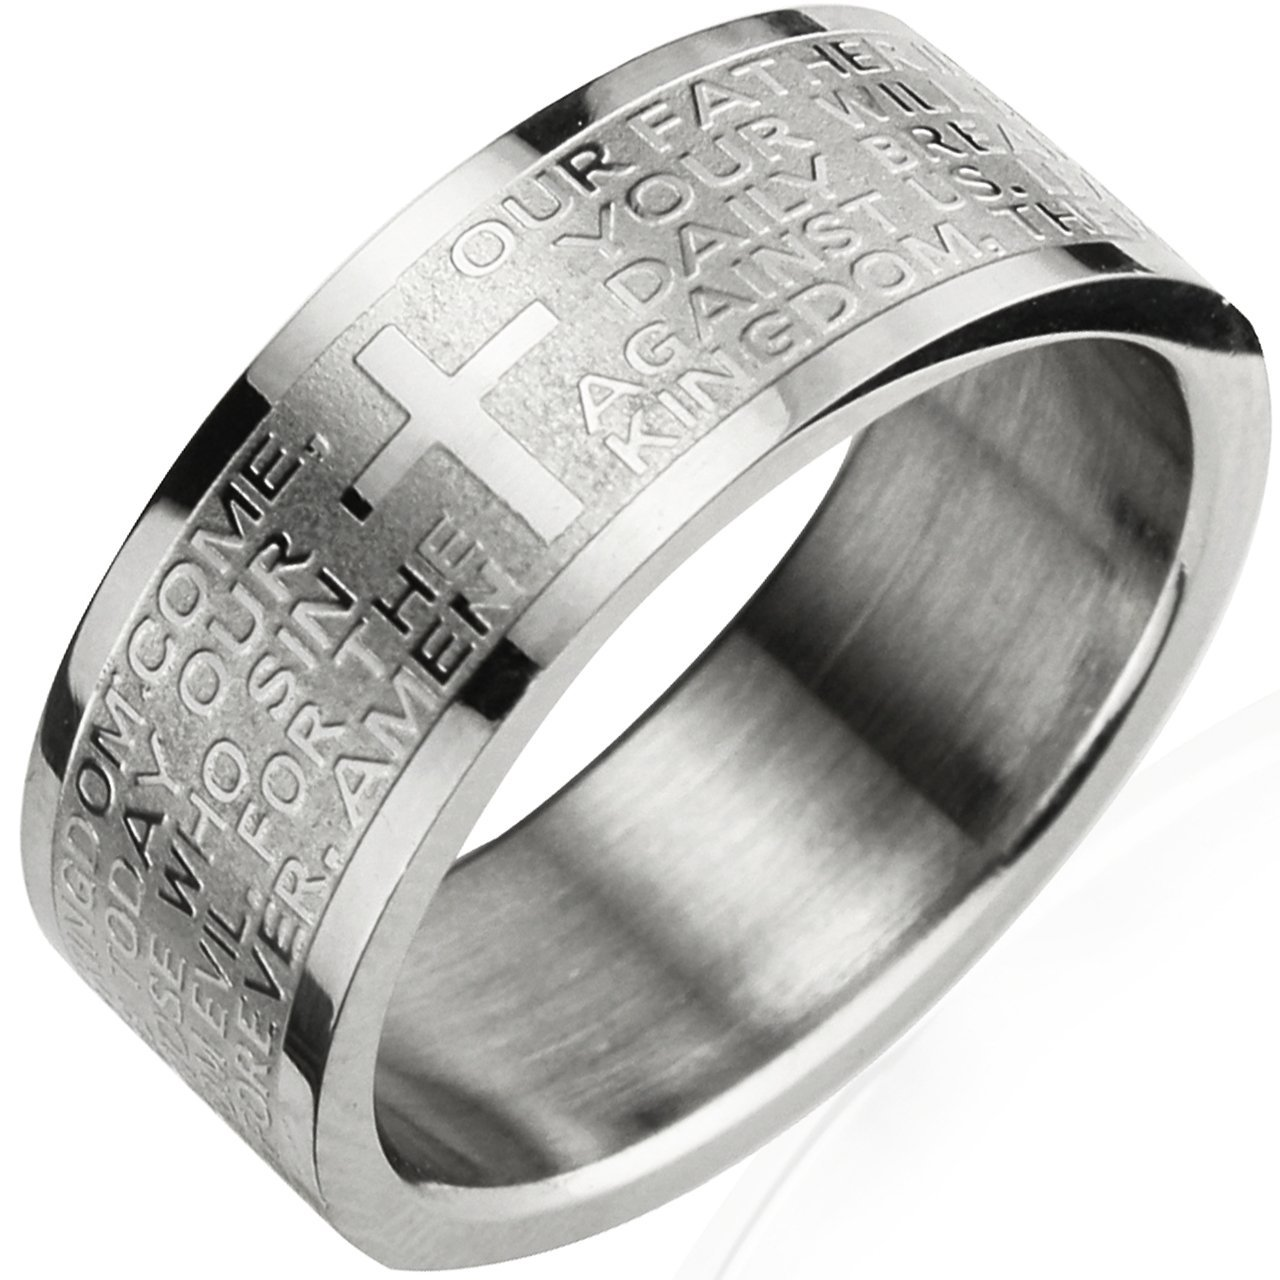 Mens Spinner Wedding Band 99 Lovely Stainless Steel English Lord